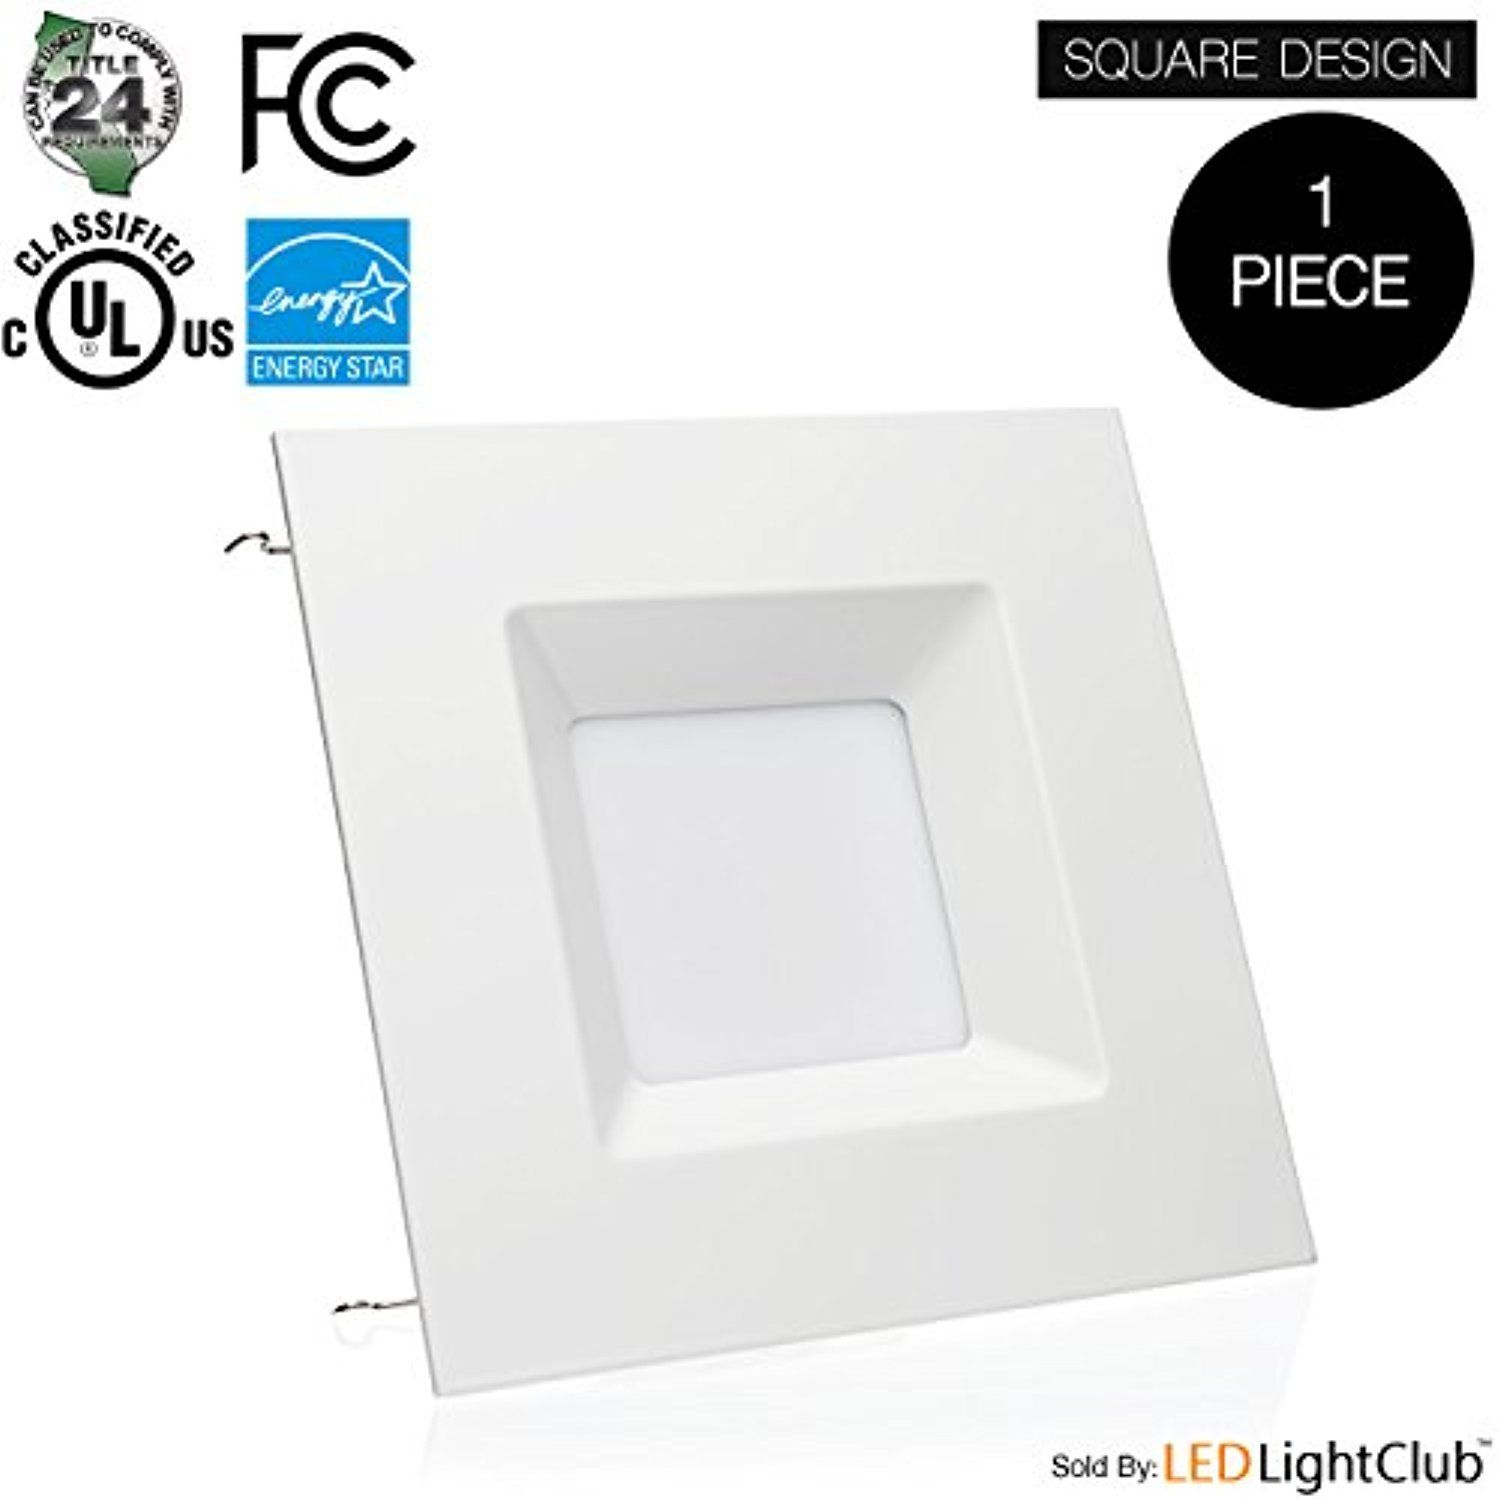 6 Inch Led Square Downlight Led Trim 15w Square Recessed Light Retrofit Led Recessed Lighting Fixture Dimmable Re Downlights Recessed Lighting Energy Star